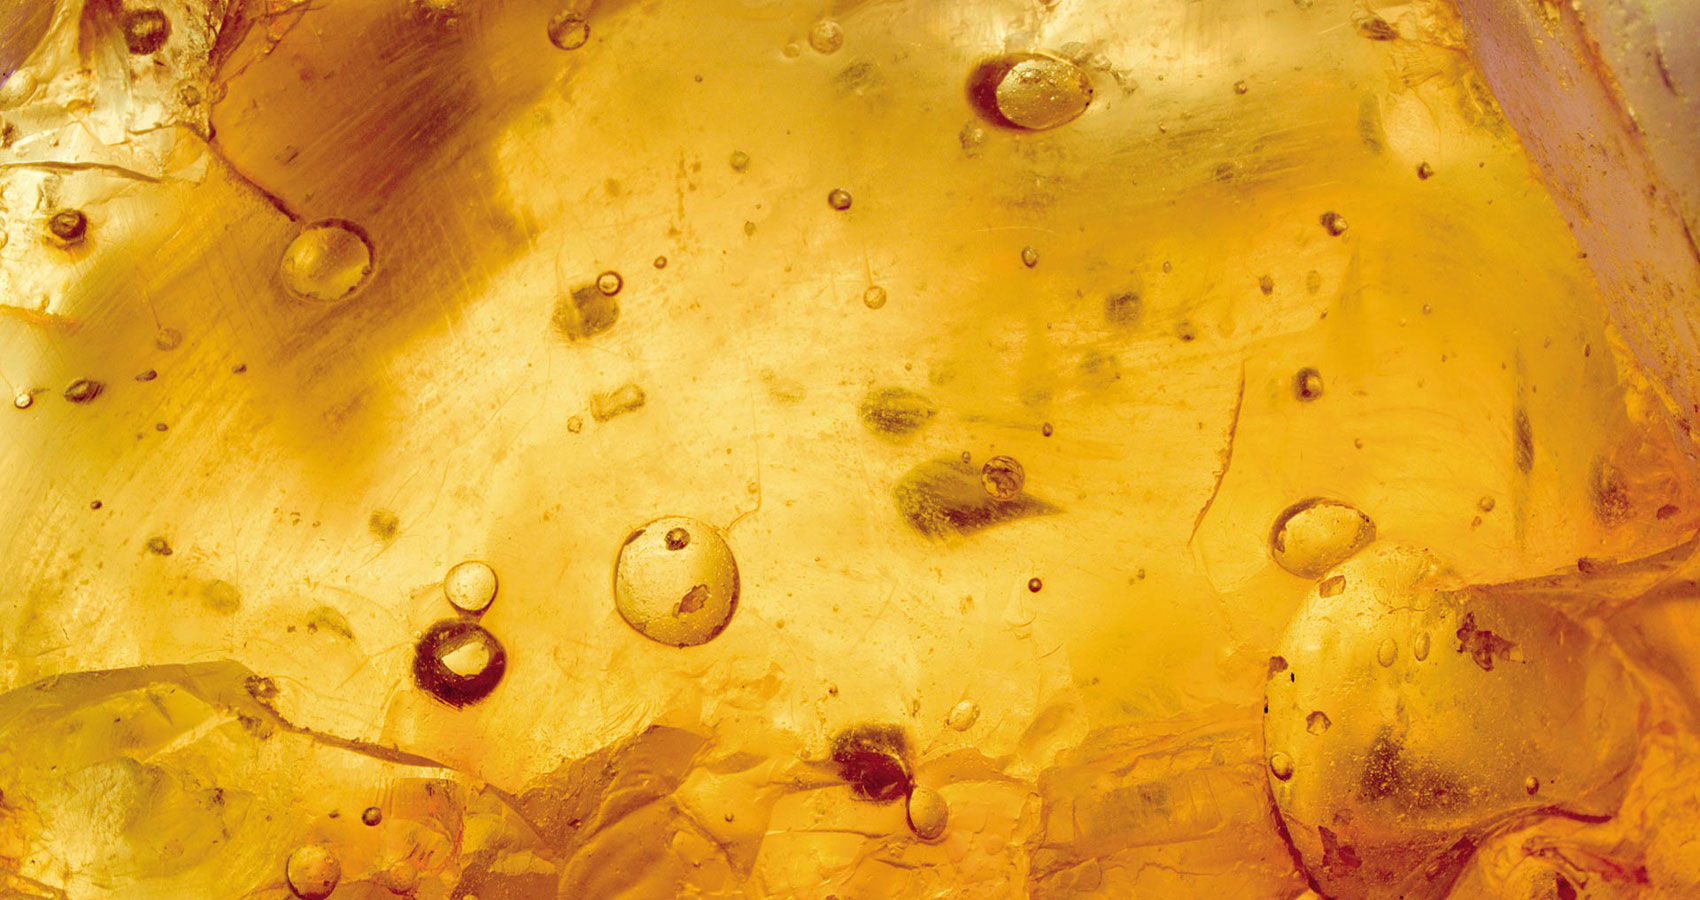 Amber Fossil written by Nicole Cheng at Spillwords.com